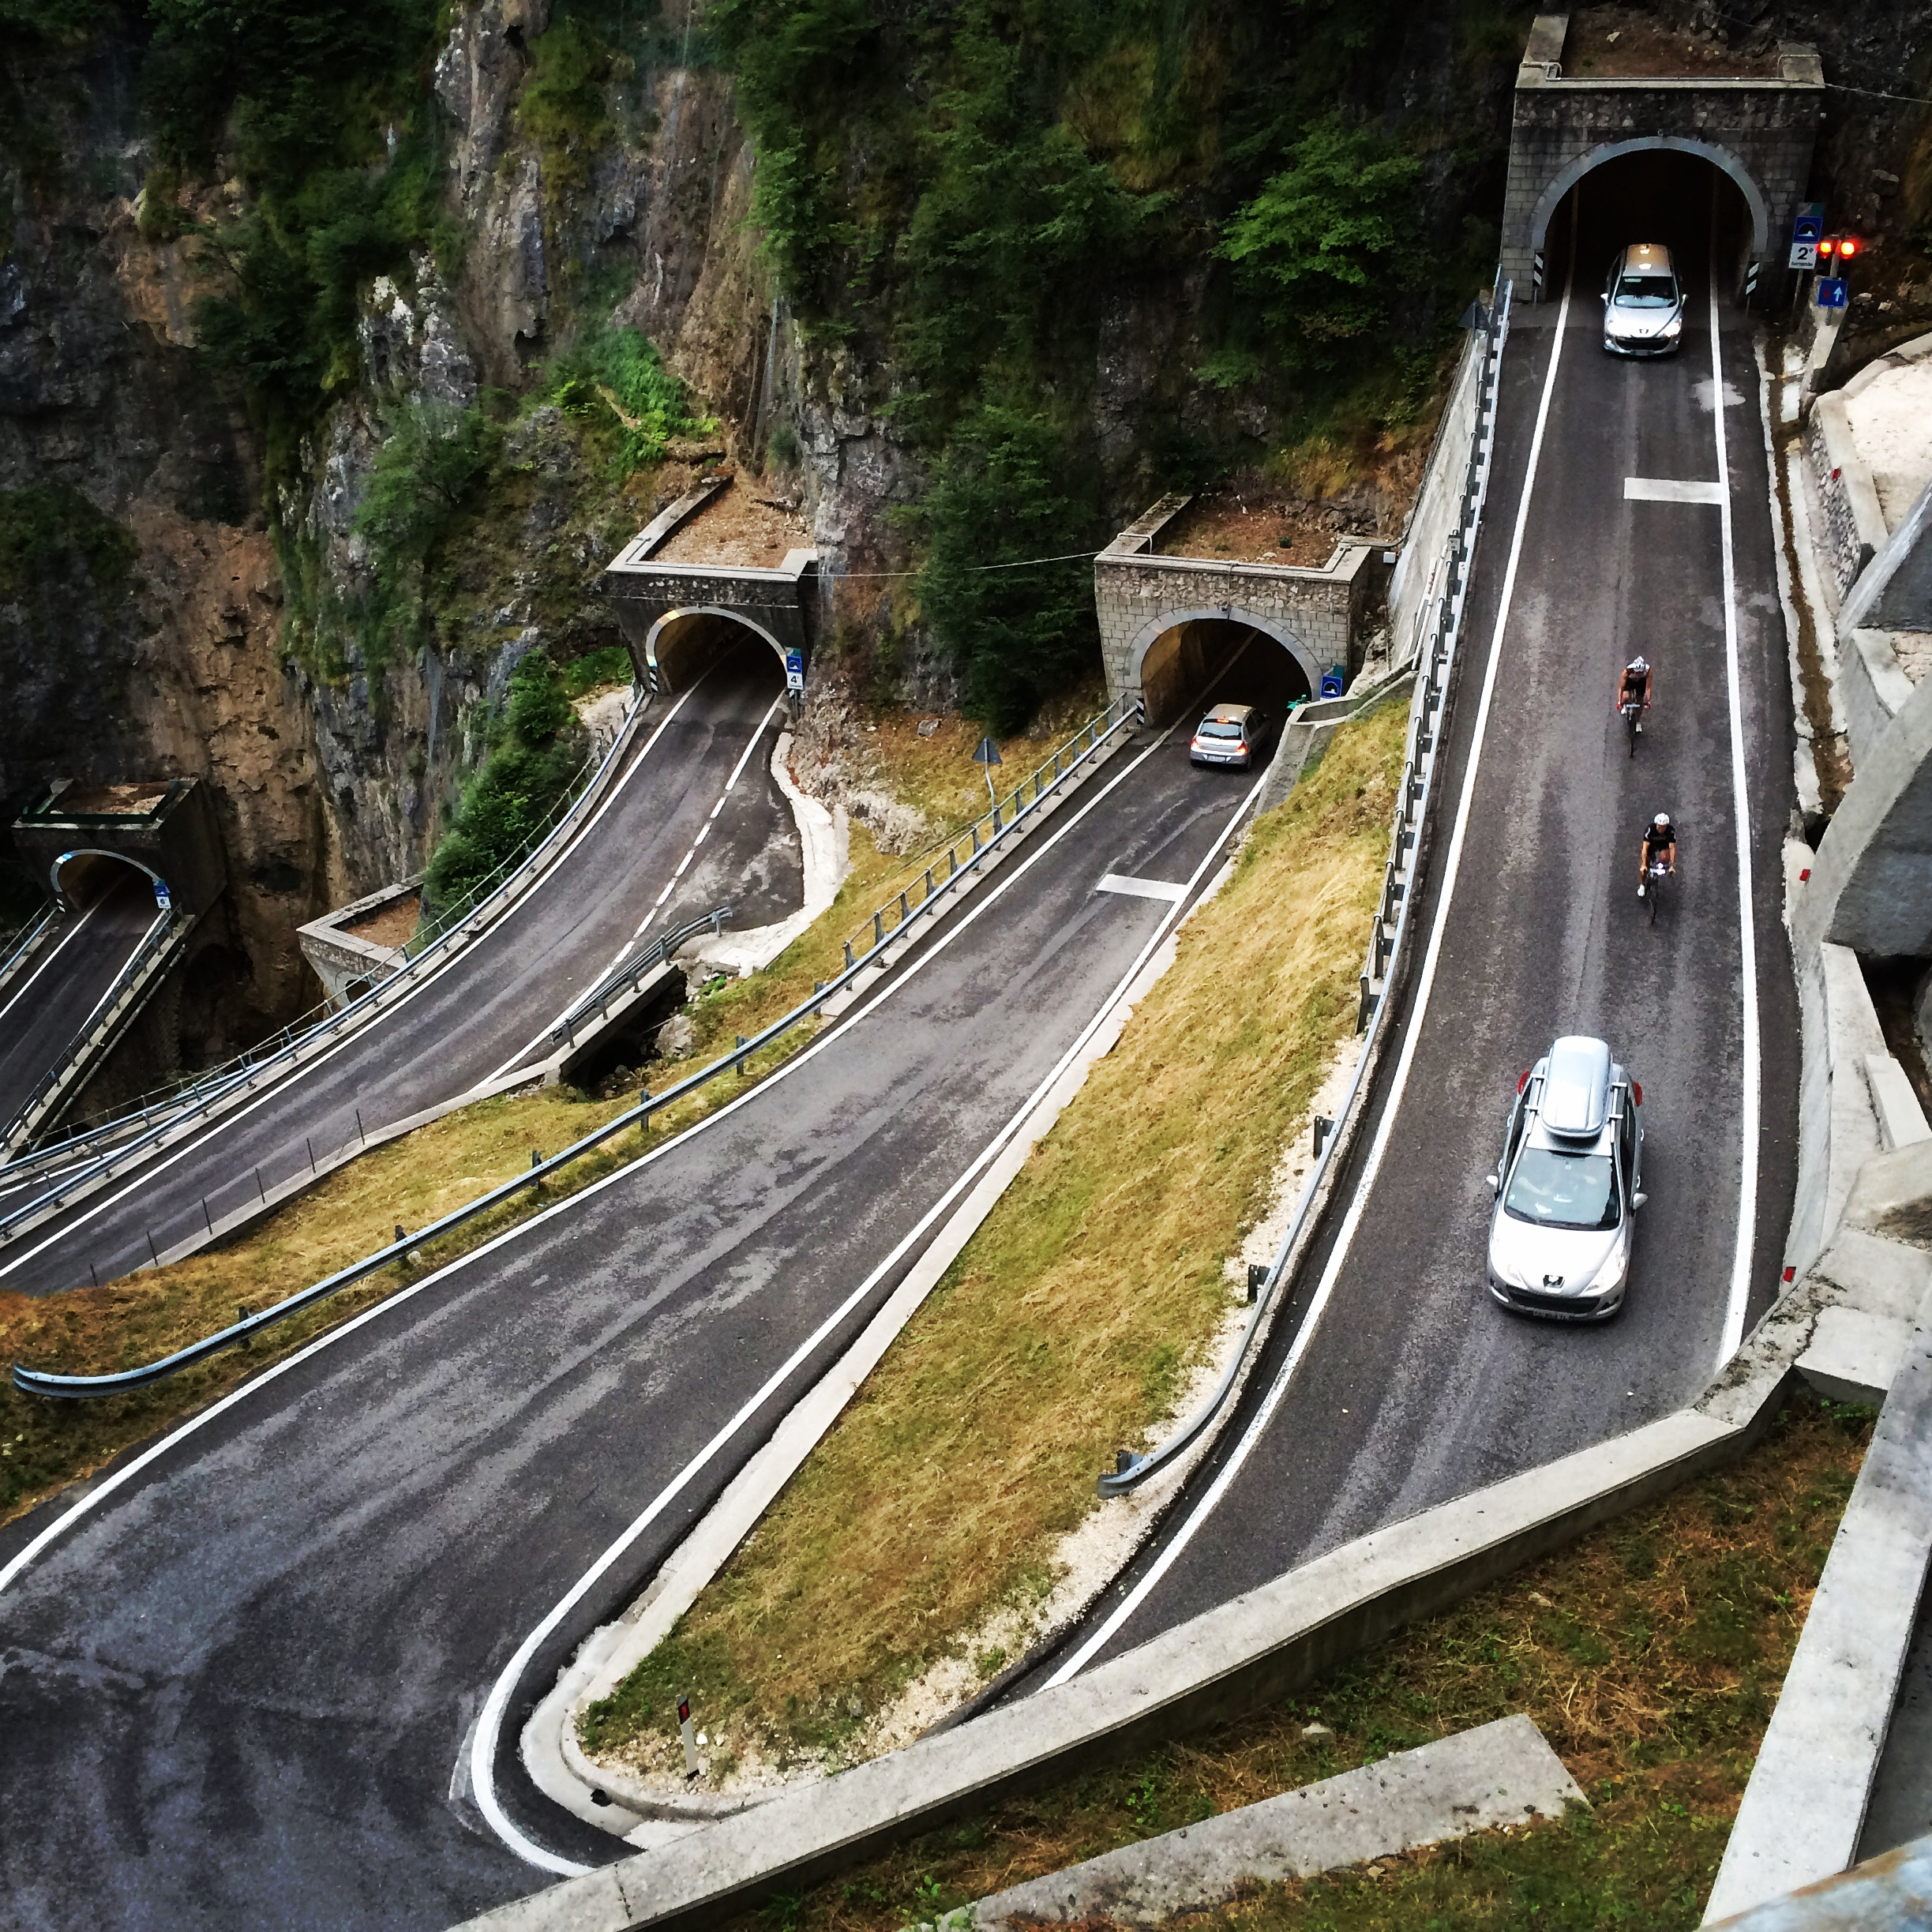 Descending the Passo San Boldo